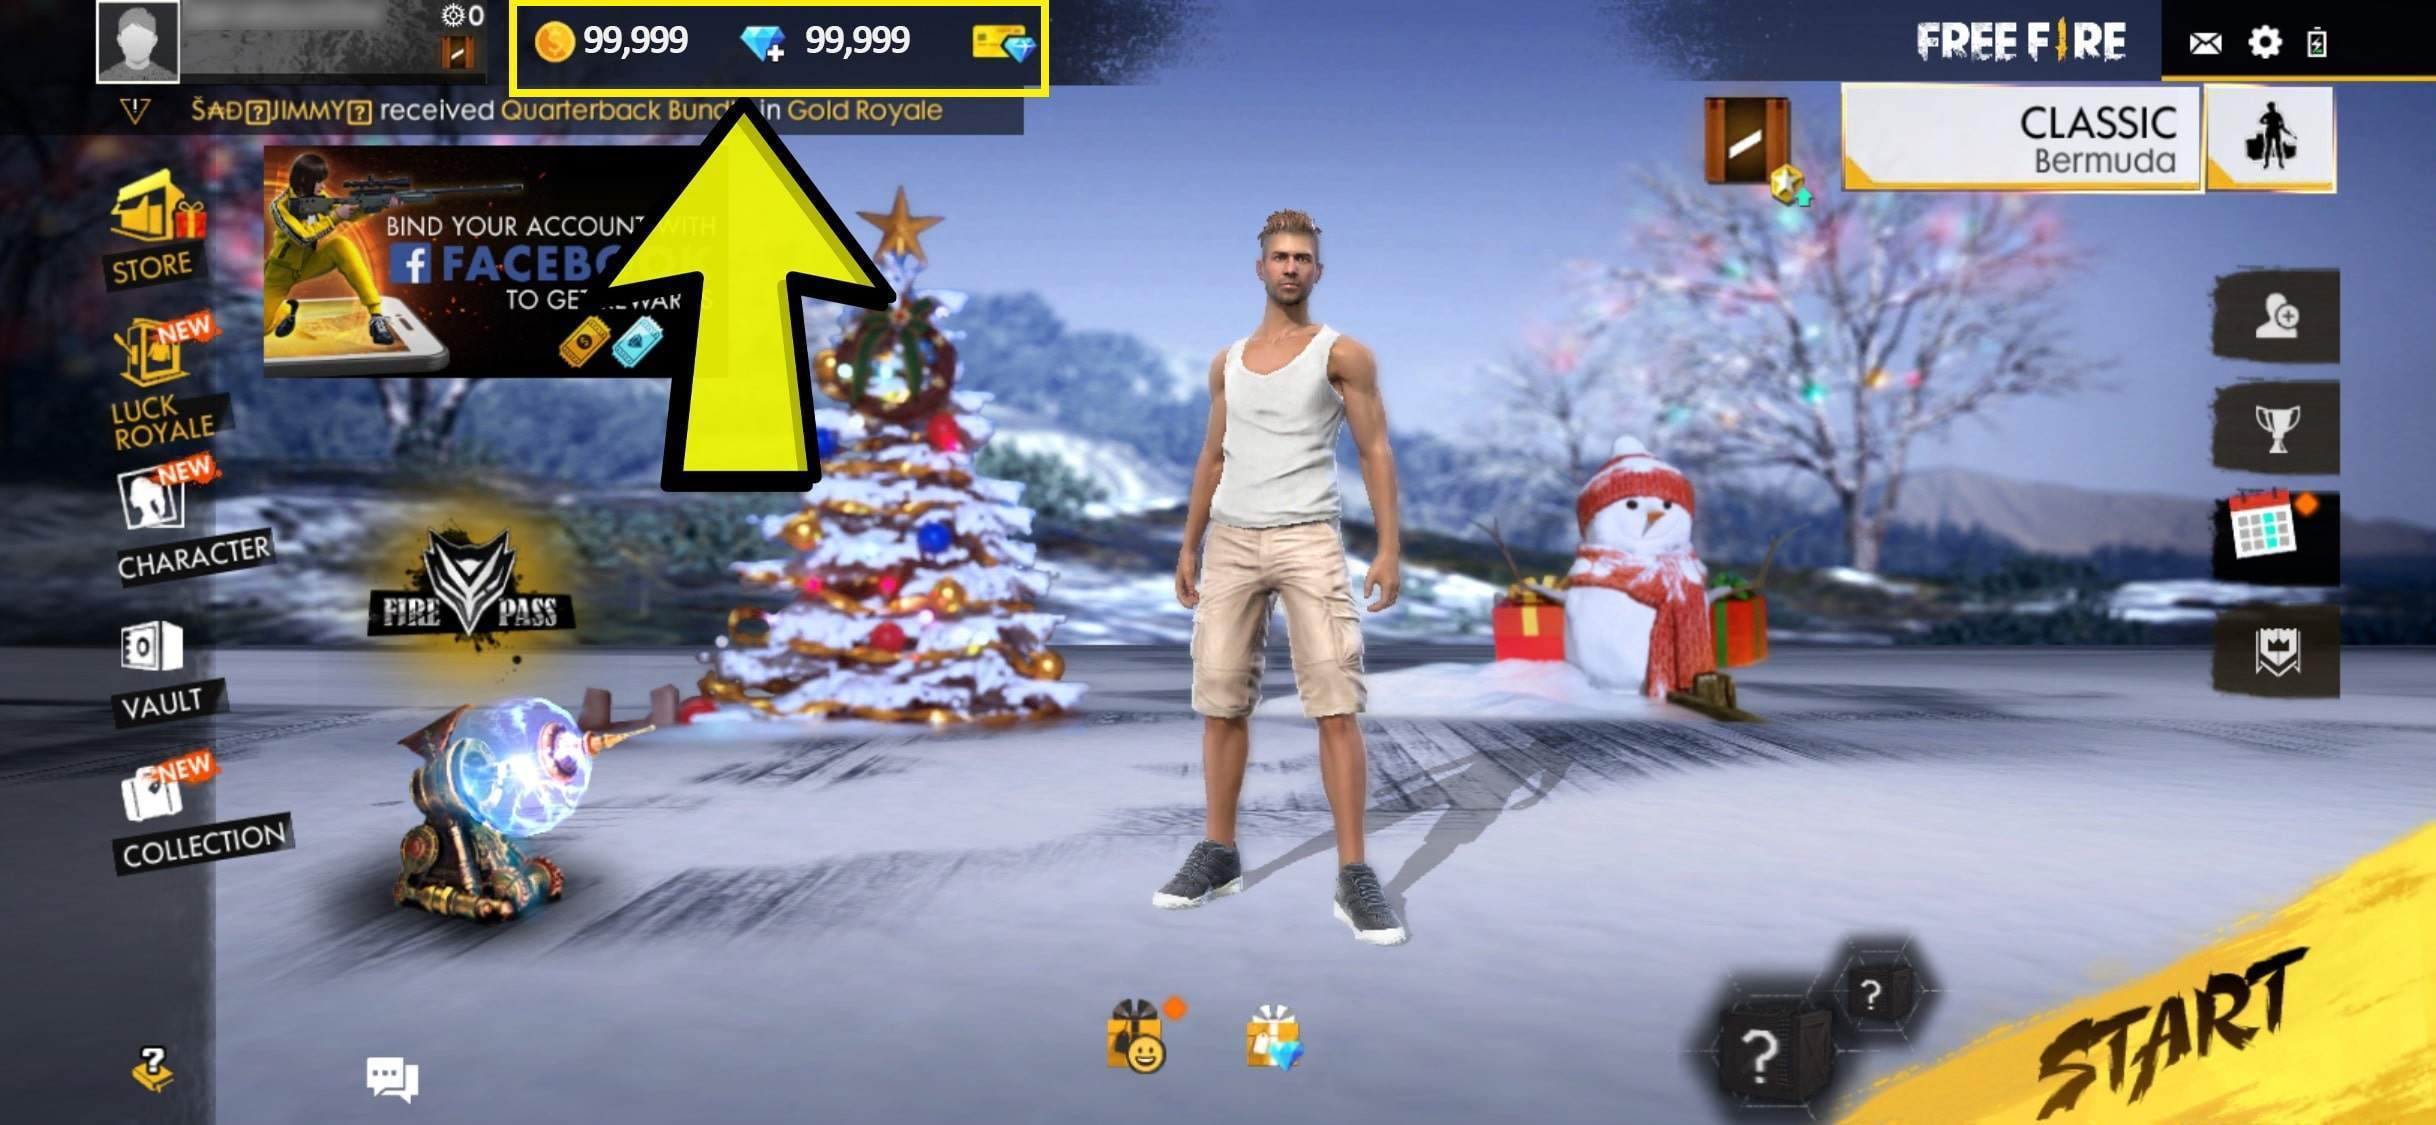 Claim Freefire Unlimited Coins and Diamonds For Free! 100% Working [October 2020]